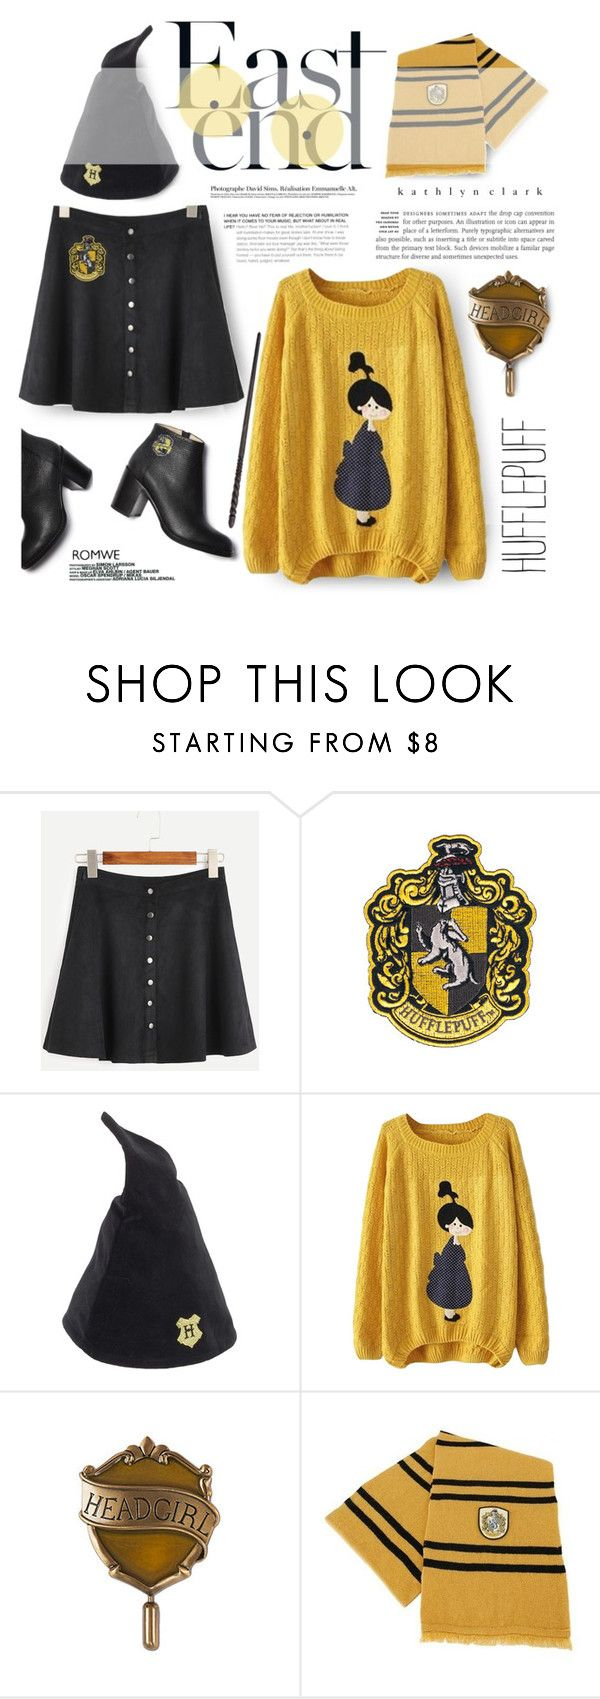 """283 : Hufflepuff Muggleborn."" by kathlynclark ❤ liked on Polyvore featuring Paul Andrew and Elope"